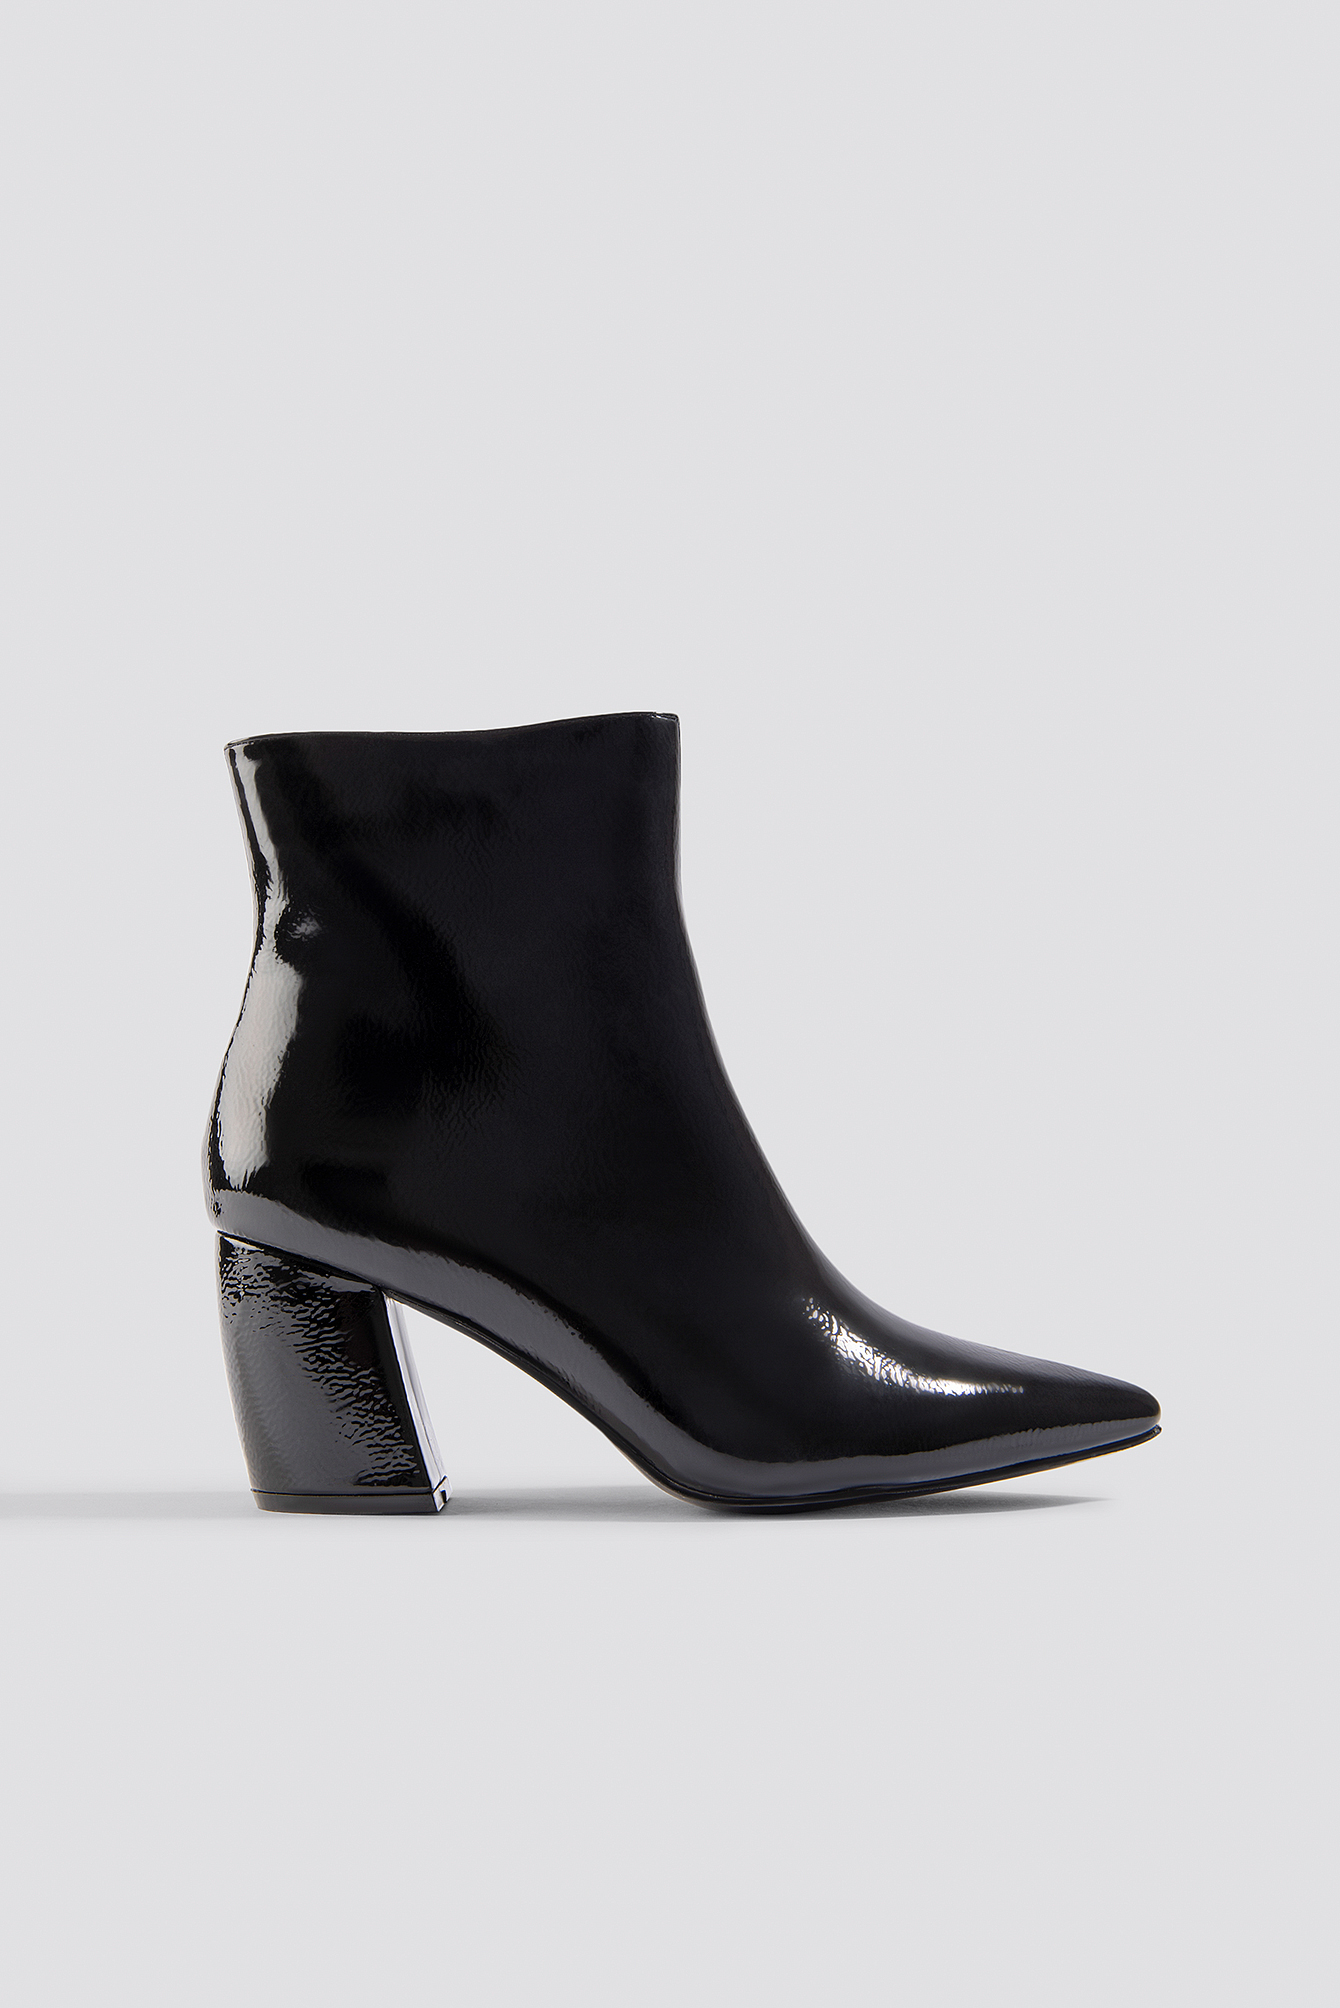 na-kd shoes -  Structured Patent Mid Heel Boots - Black